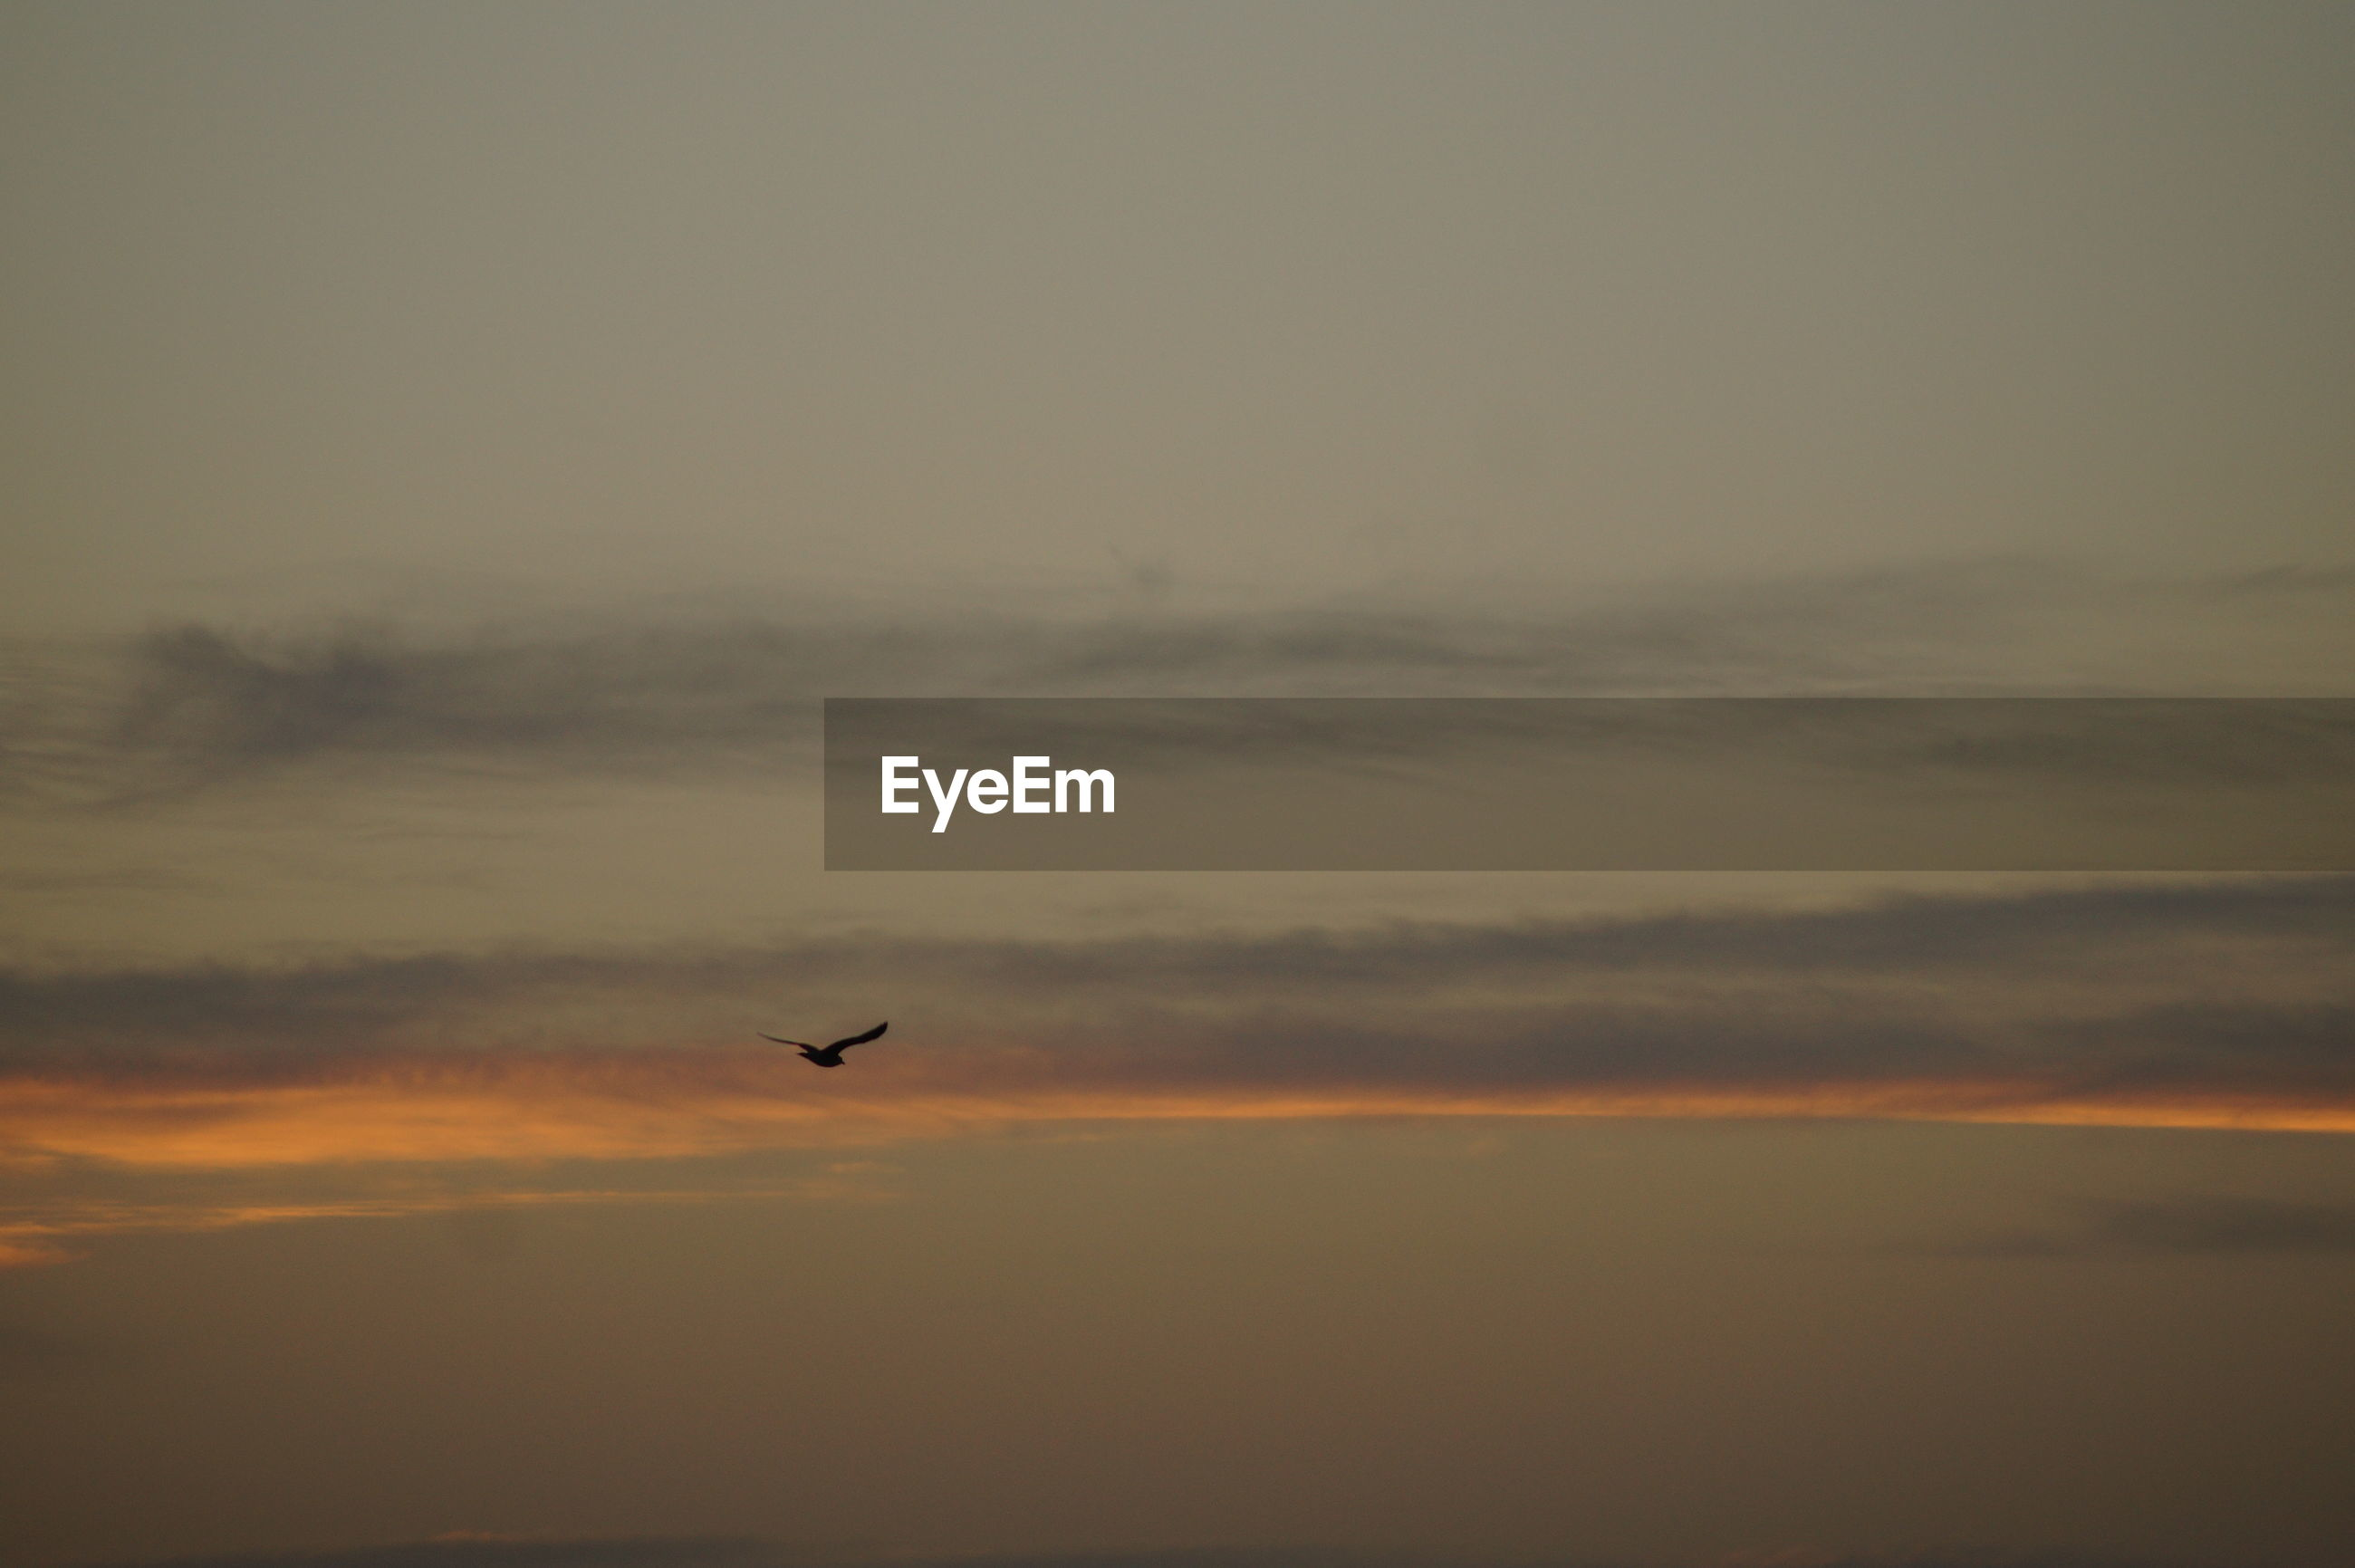 sunset, bird, beauty in nature, sky, nature, flying, silhouette, scenics, orange color, animals in the wild, tranquil scene, animal themes, tranquility, cloud - sky, outdoors, no people, one animal, animal wildlife, mid-air, spread wings, day